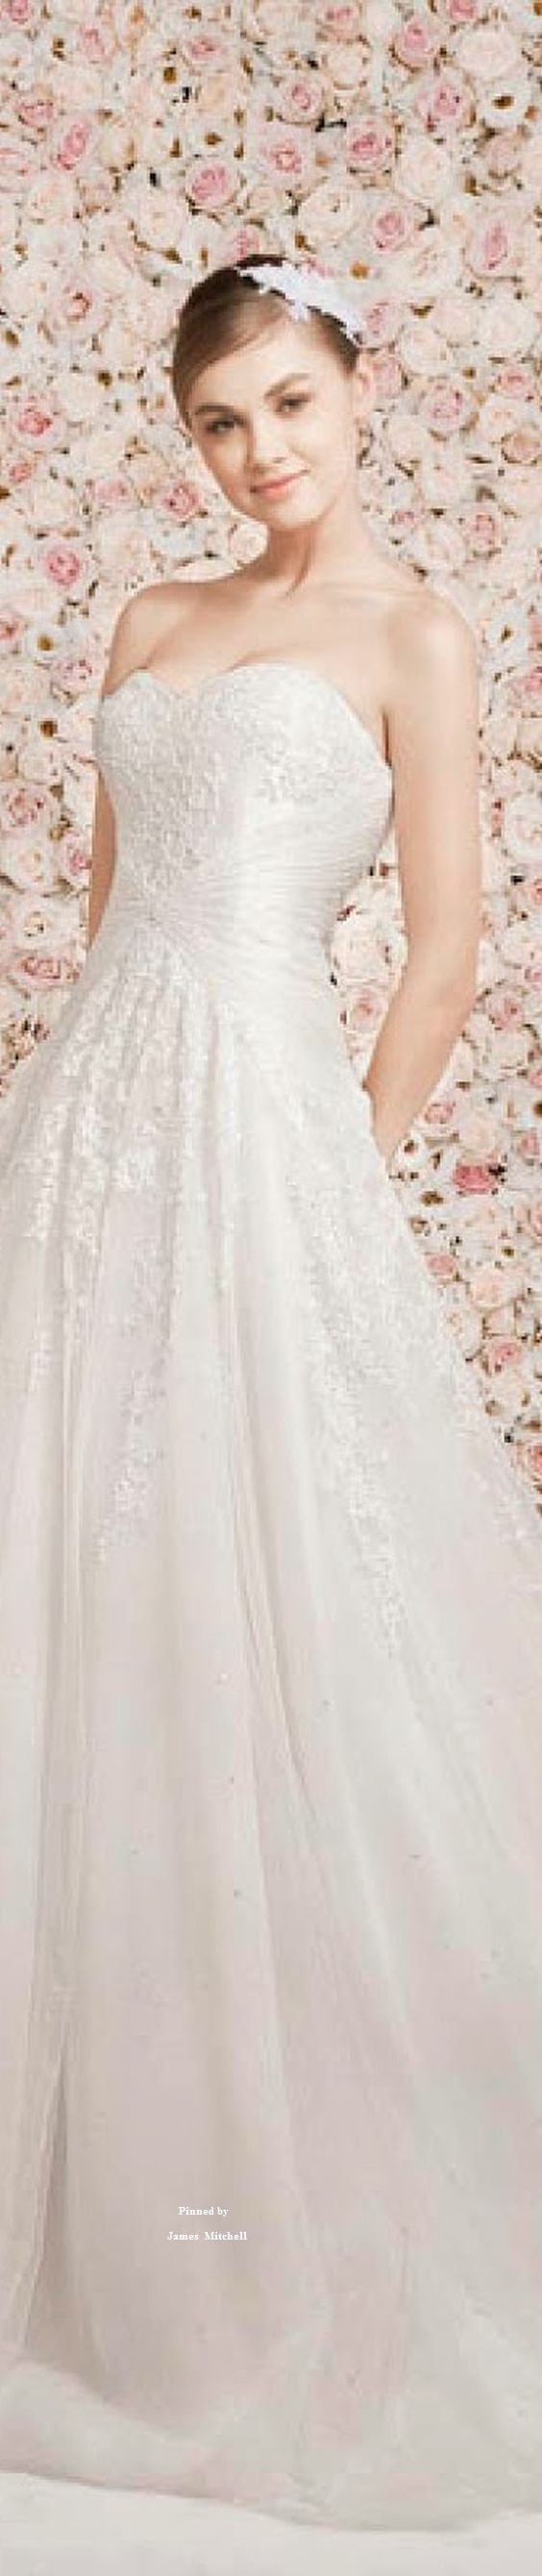 Oved Cohen 2014 Wedding Dresses Collection